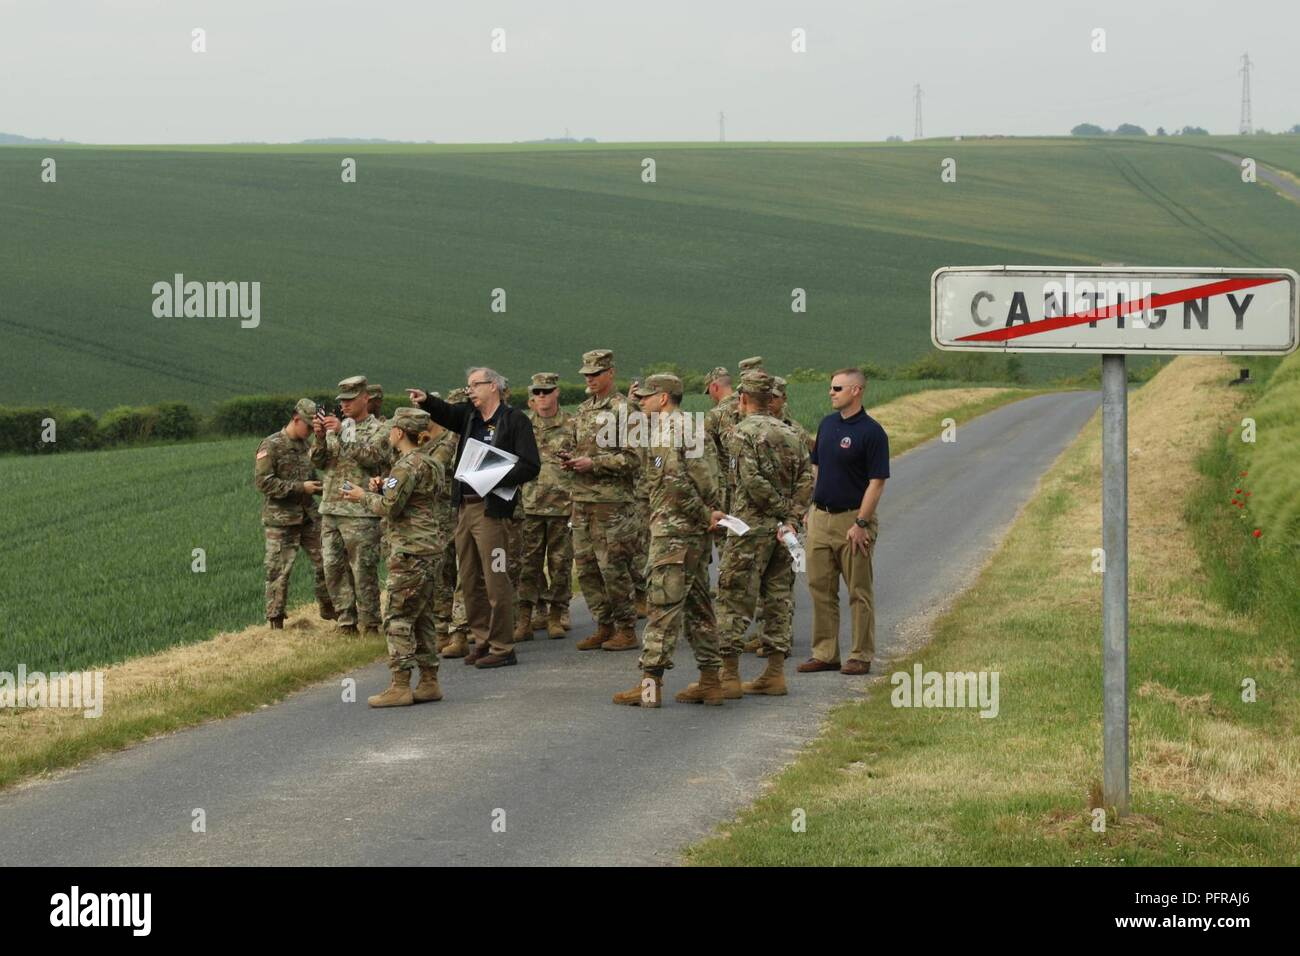 """Robert J. Smith. Fort Riley Museum Complex director and historian, leads a group of """"Big Red One"""" Soldiers including Maj. Gen. Joseph M. Martin, 1st Infantry Division and Fort Riley commanding general, during an educational tour of Cantigny, France on May 24, 2018. The battle of Cantigny served as the first test of the U.S. military during WWI, and the first time that the 1st Inf. Div. took to the field in combat. - Stock Image"""